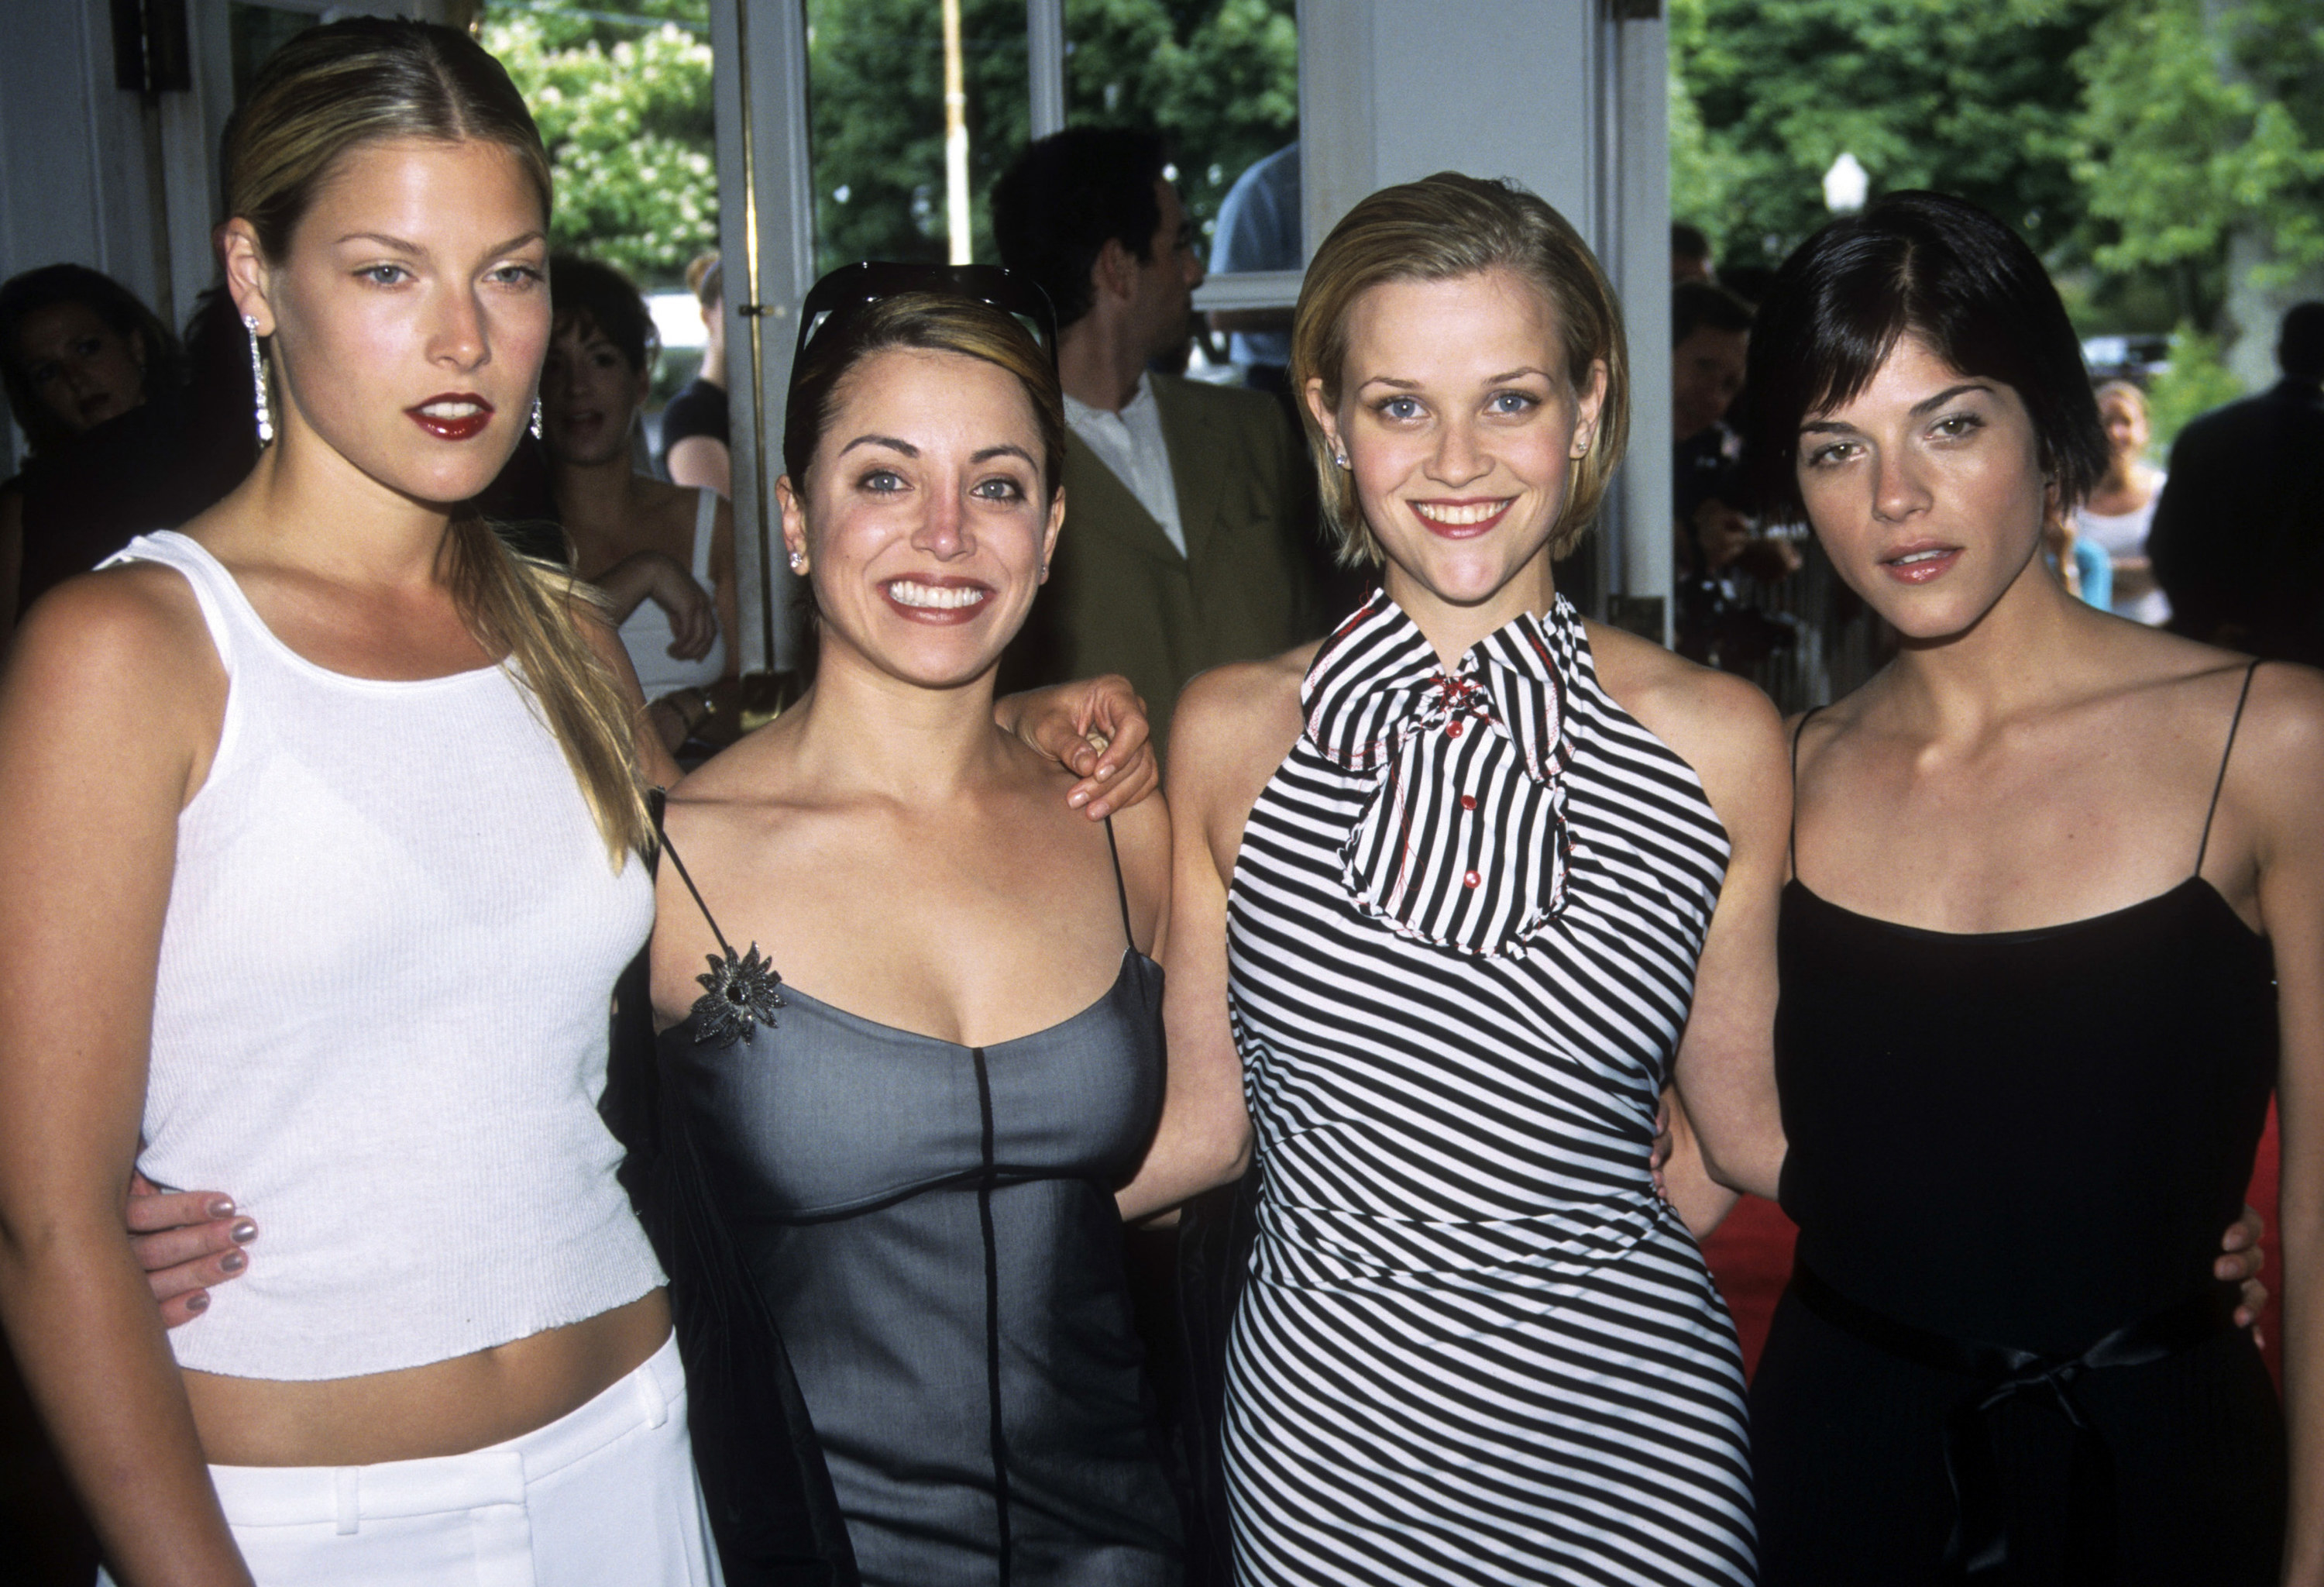 """Ali Larder, Alanna Ubach, Reese Witherspoon, and Selma Blair at the """"Legally Blonde"""" premiere"""